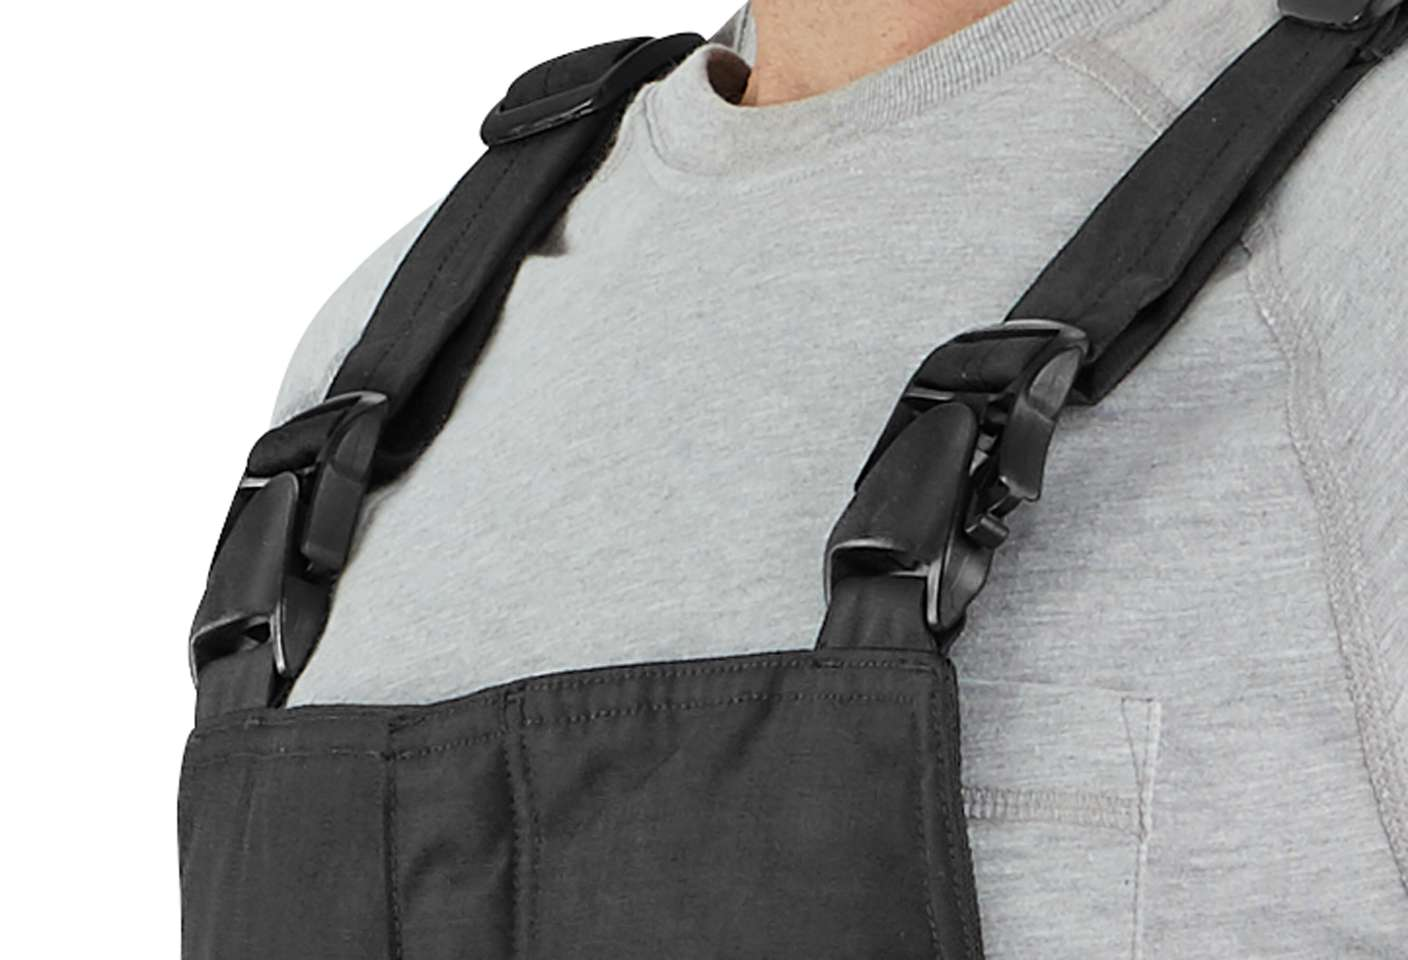 Low-profile buckle suspenders make changing easy